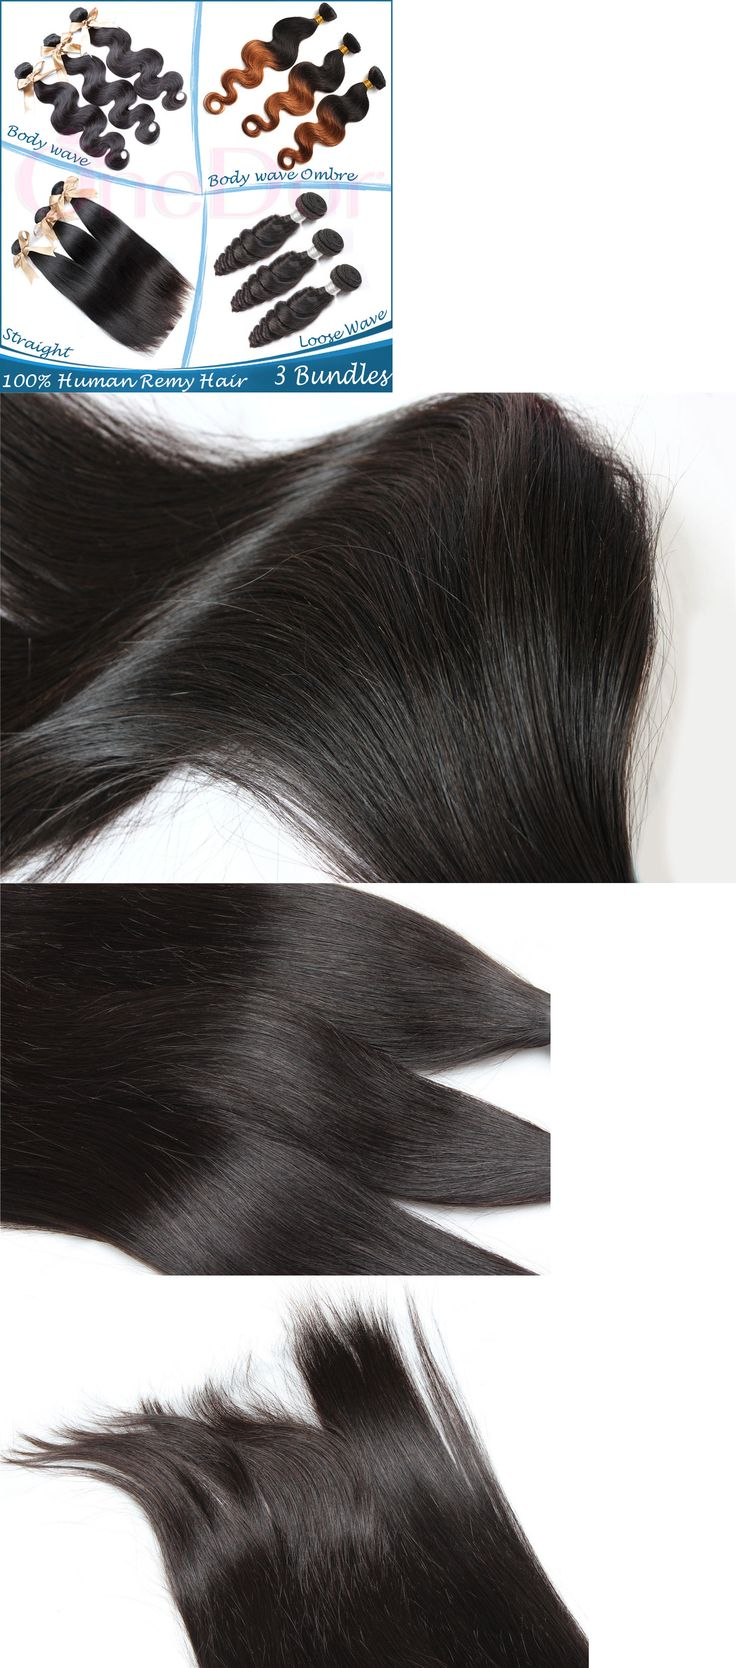 537 best wig and extension supplies images on pinterest wig and extension supplies onedor 3 mix bundles 100 brazilian remy real human hair pmusecretfo Choice Image